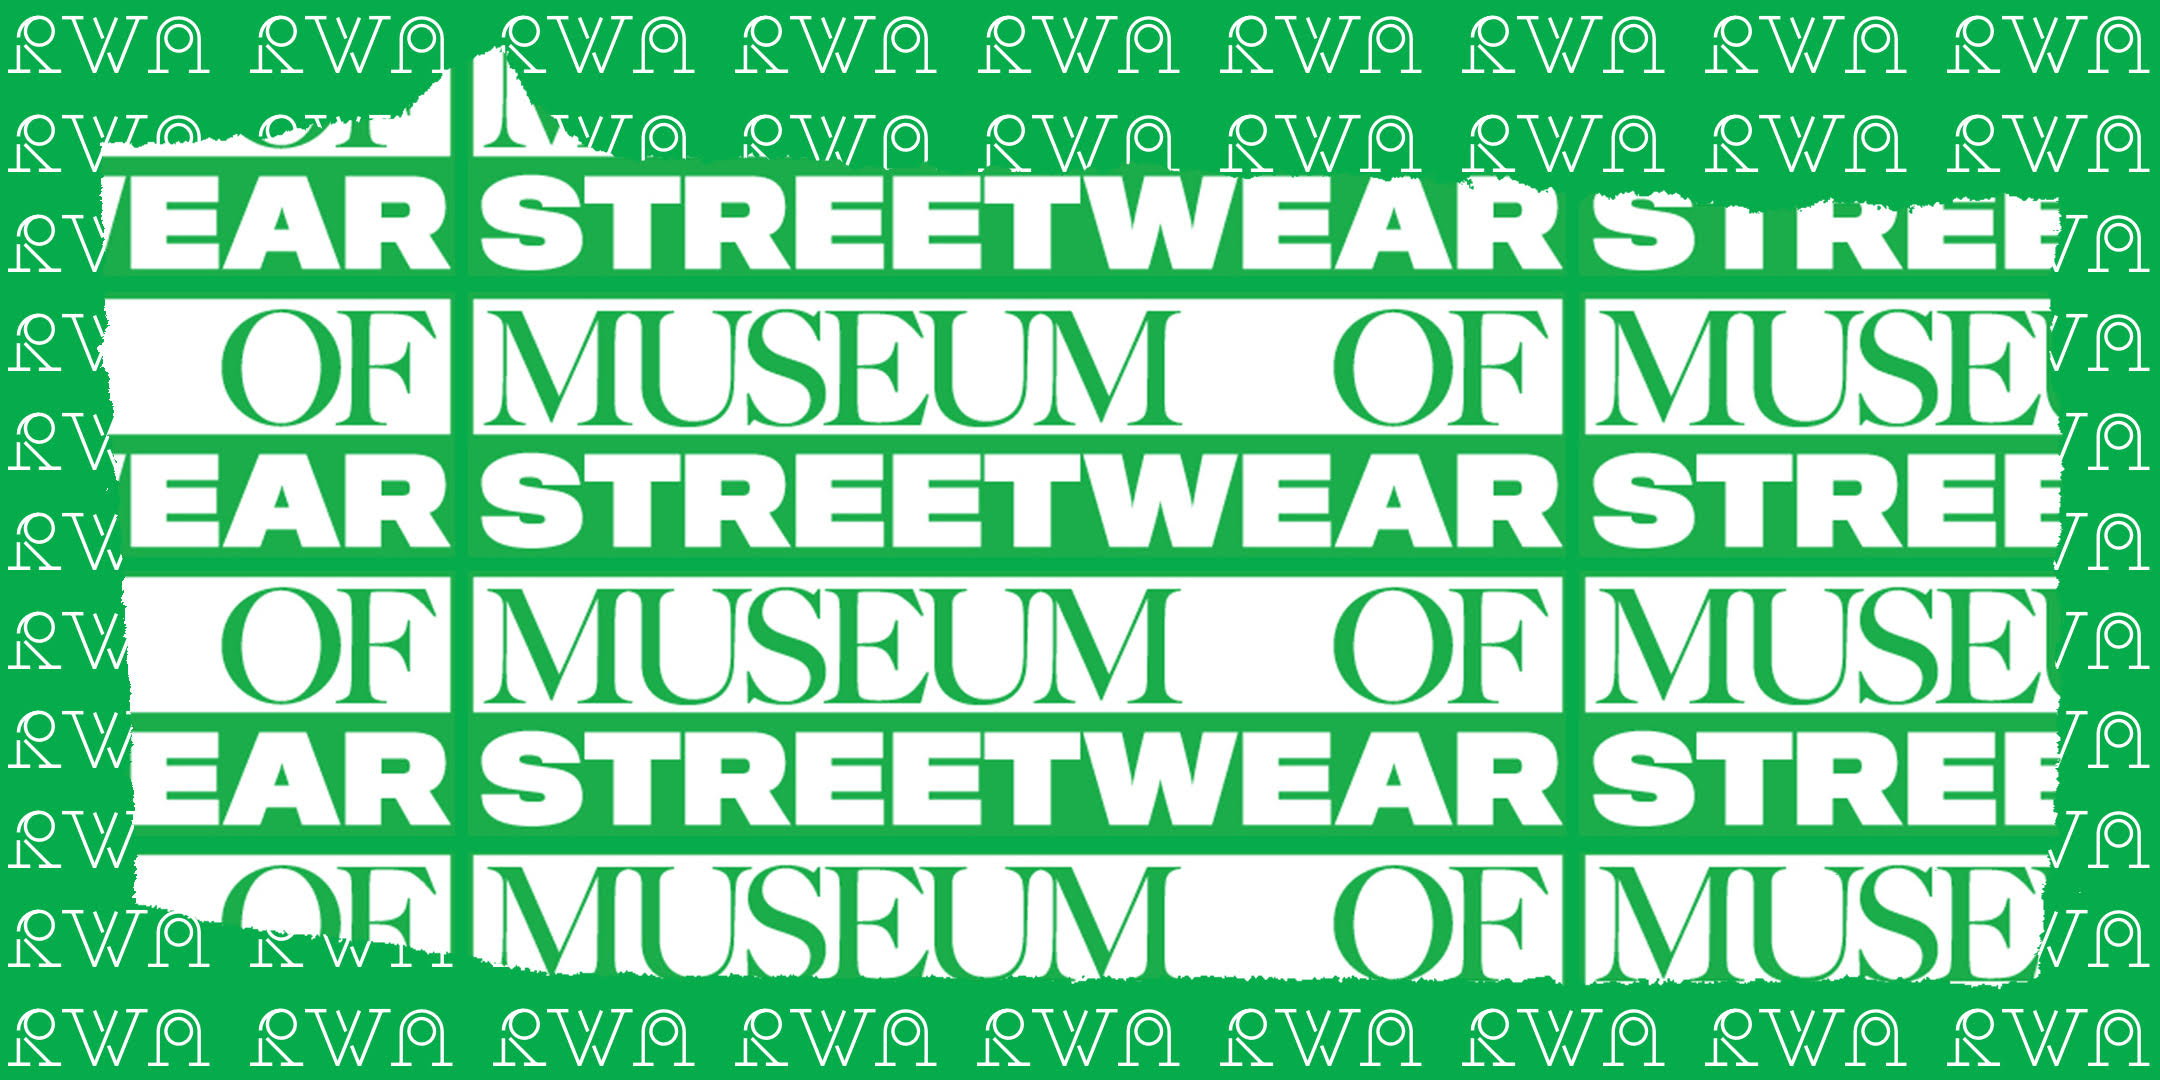 Museum of Streetwear - See Little High Little Low July 27th & 28th in Chicago during Museum of Streetwear.